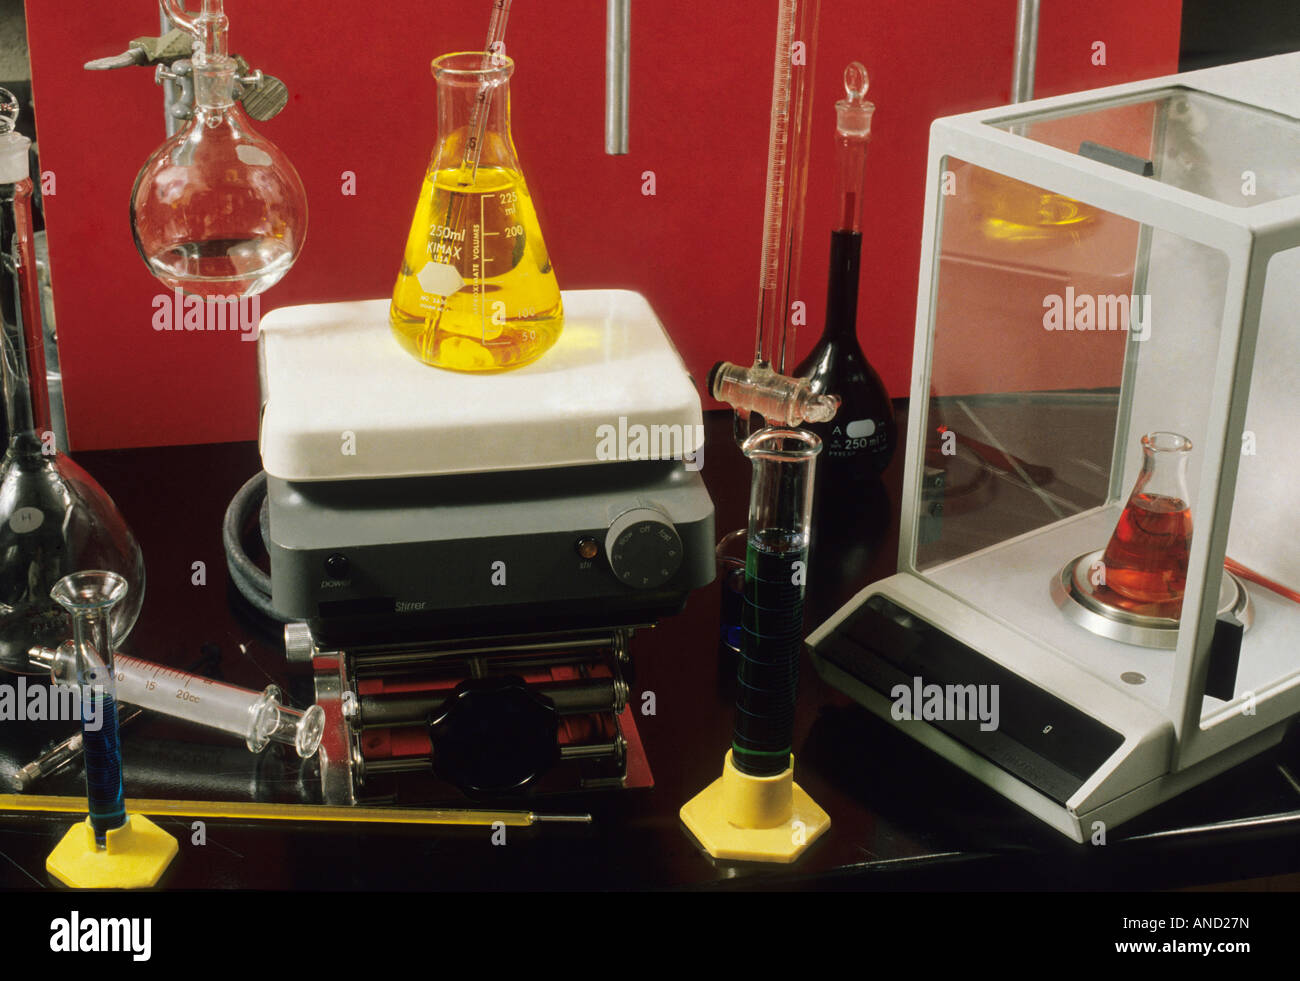 Chemistry equipment beakers test tubes measurements chemicals science vacuum shaker thermometer heat - Stock Image